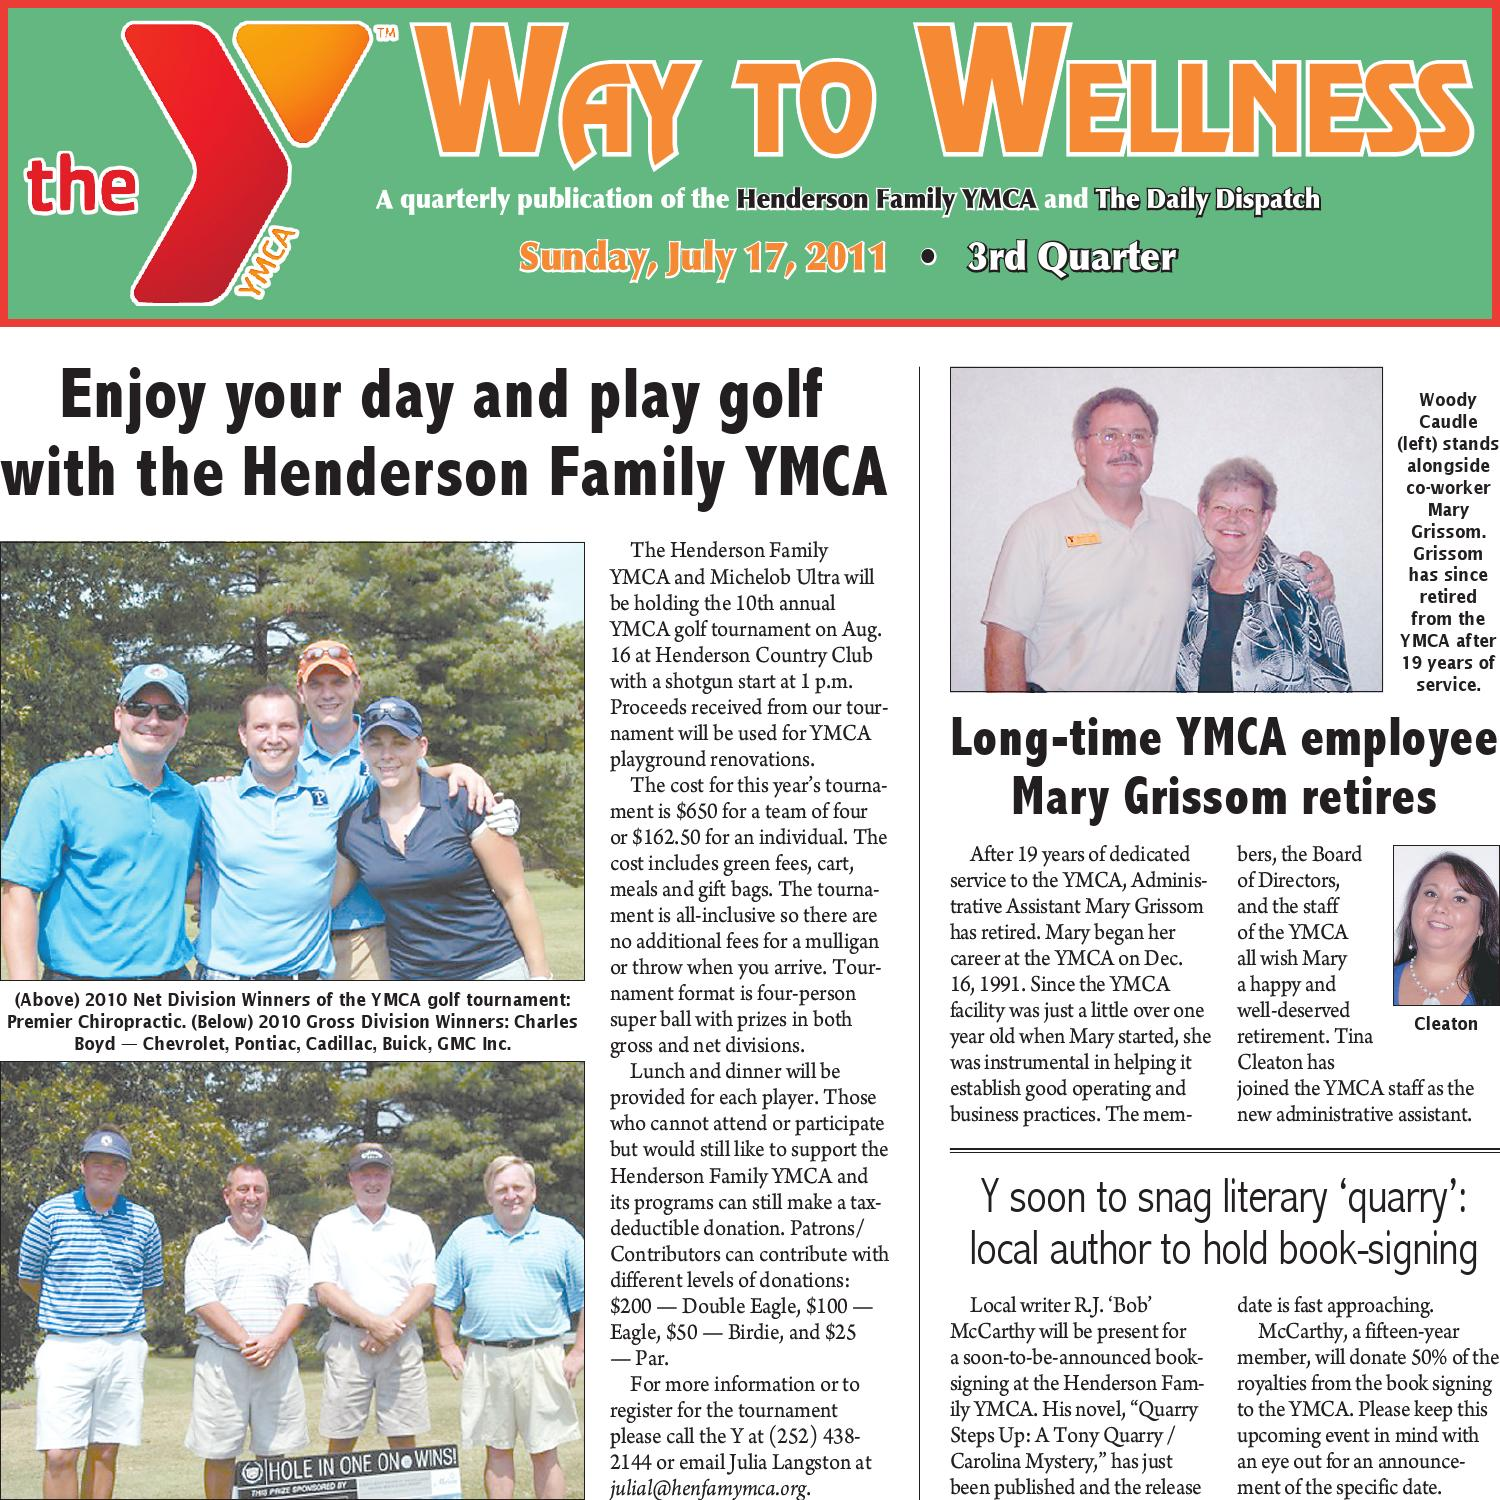 Way To Wellness The Daily Dispatch July 17 2011 By The Daily Dispatch Issuu